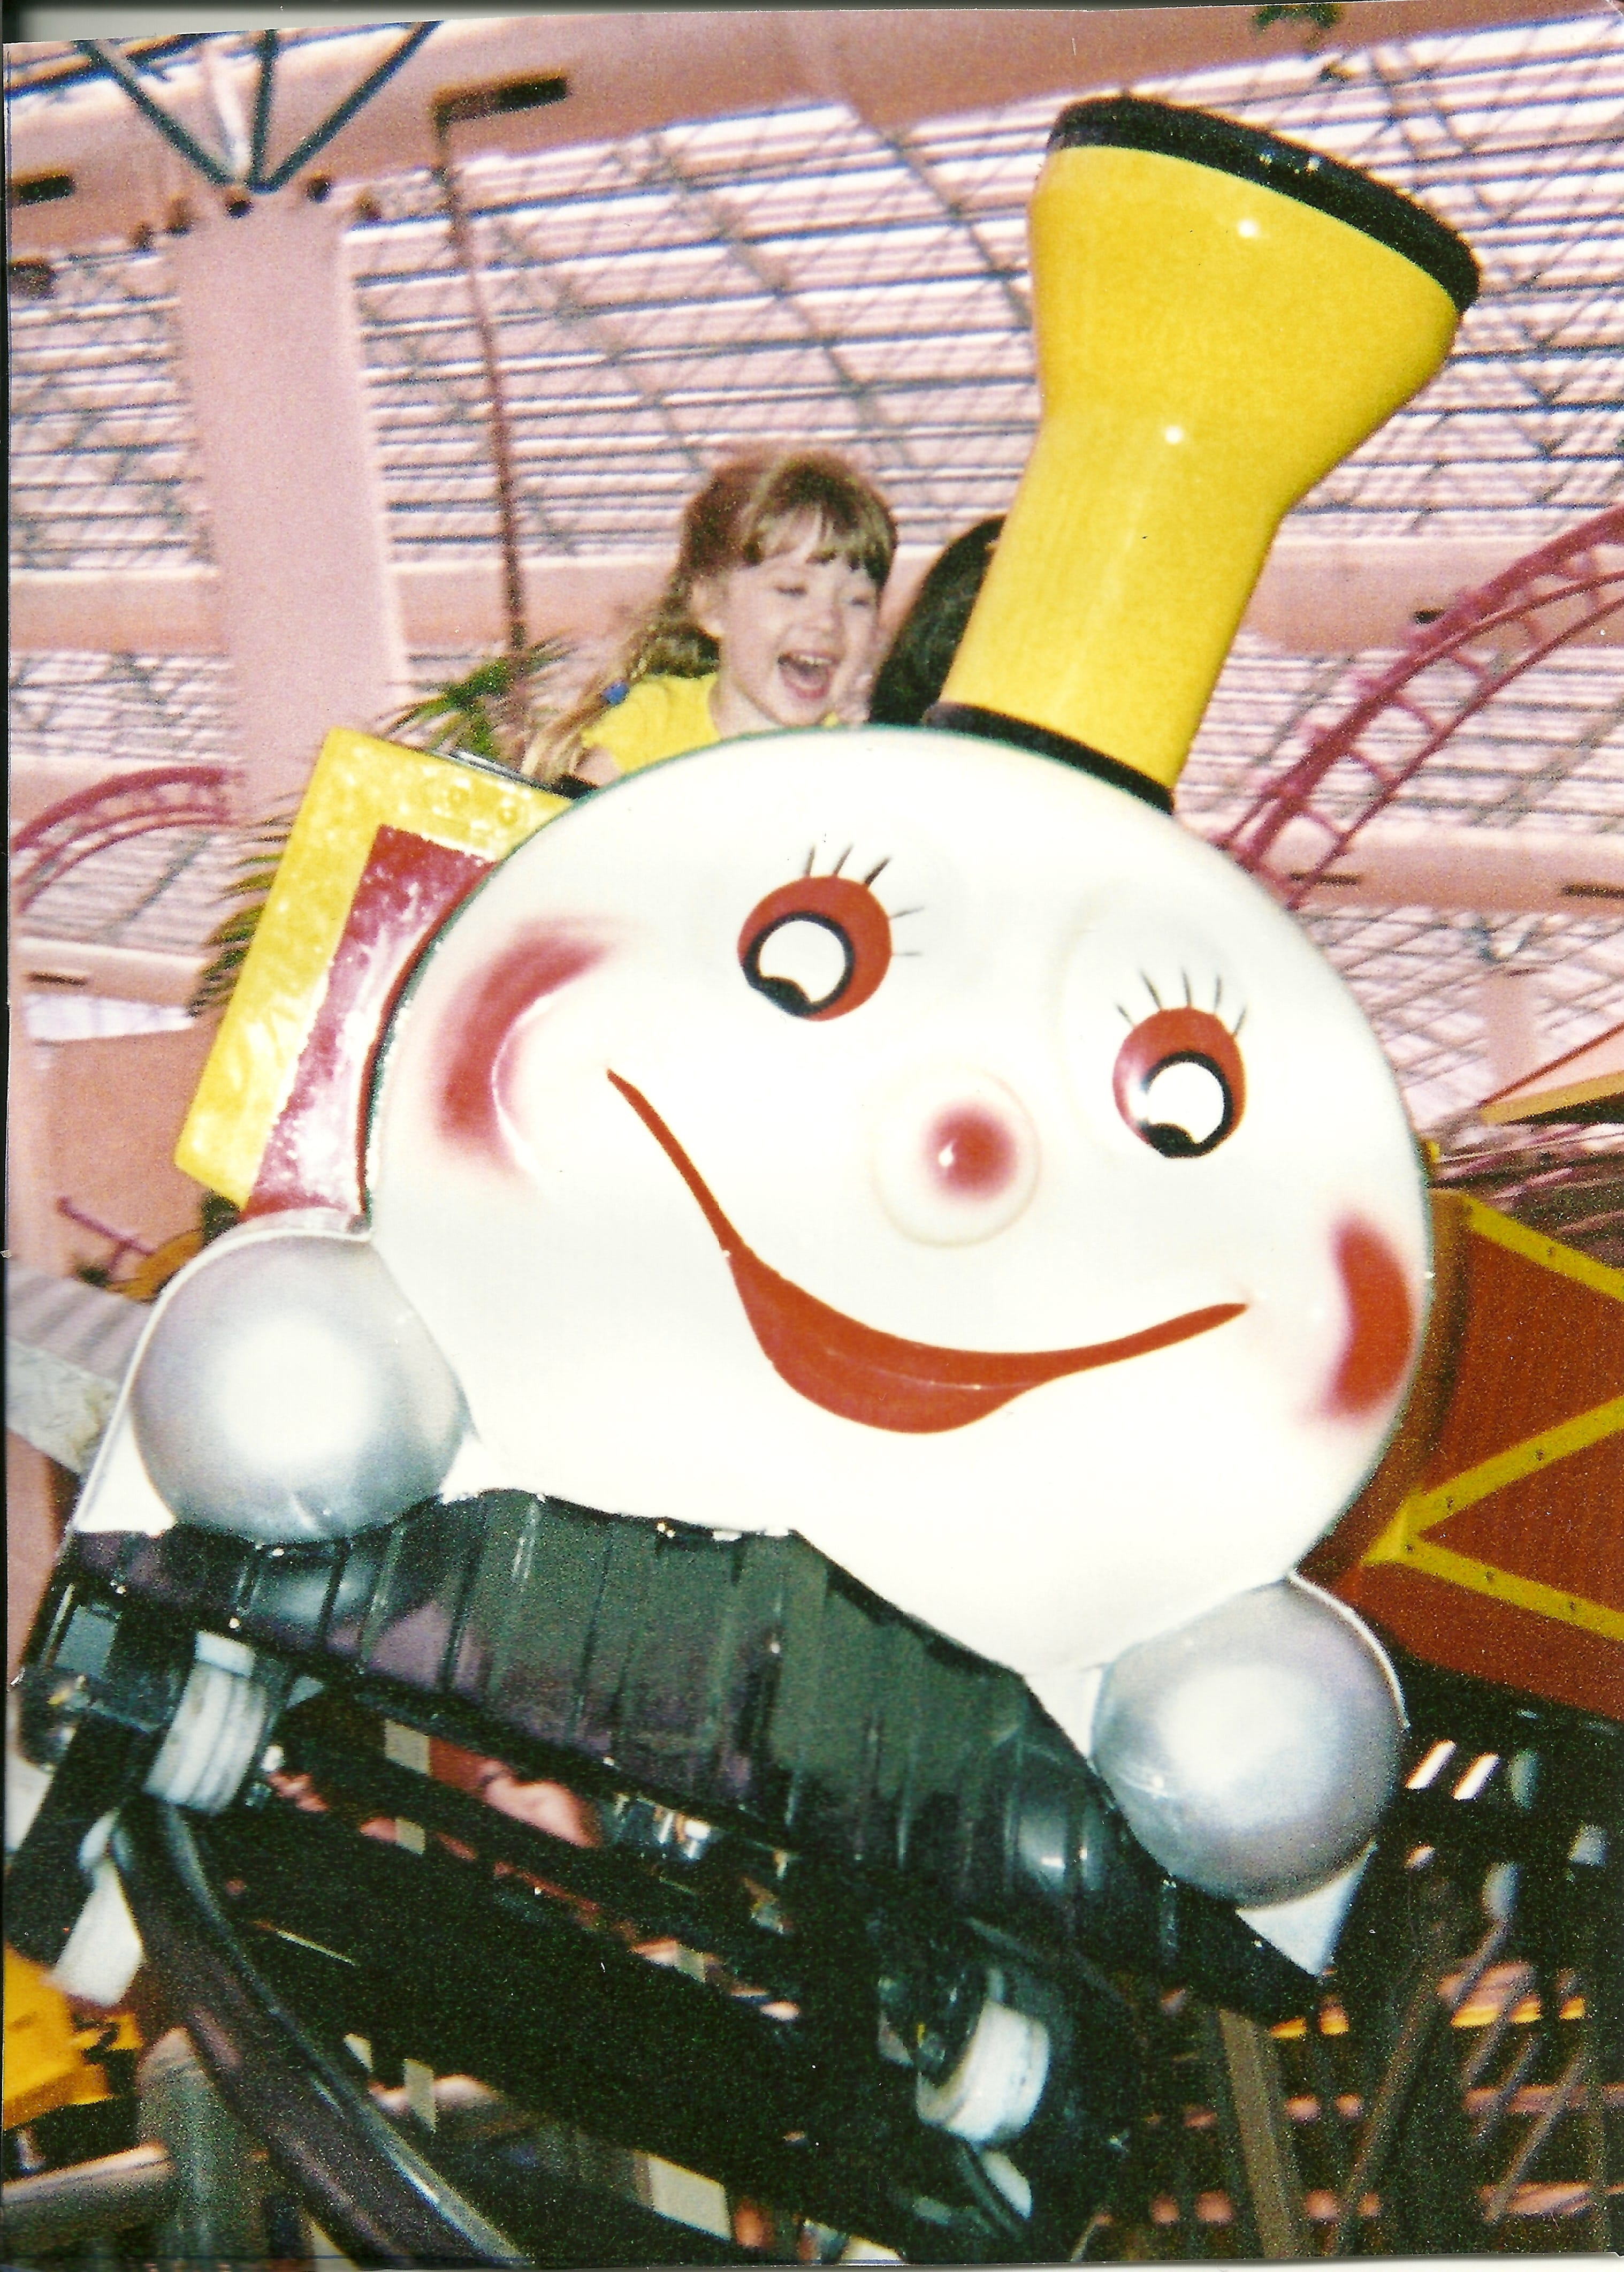 Pure Joy on the face of my granddaughter Sophie riding the roller coaster at Circus Circus in Las Vegas; in 2002 when she was 4 years old. Picture taken by Victoria Moy (grandmother). Photo by Victoria Moy